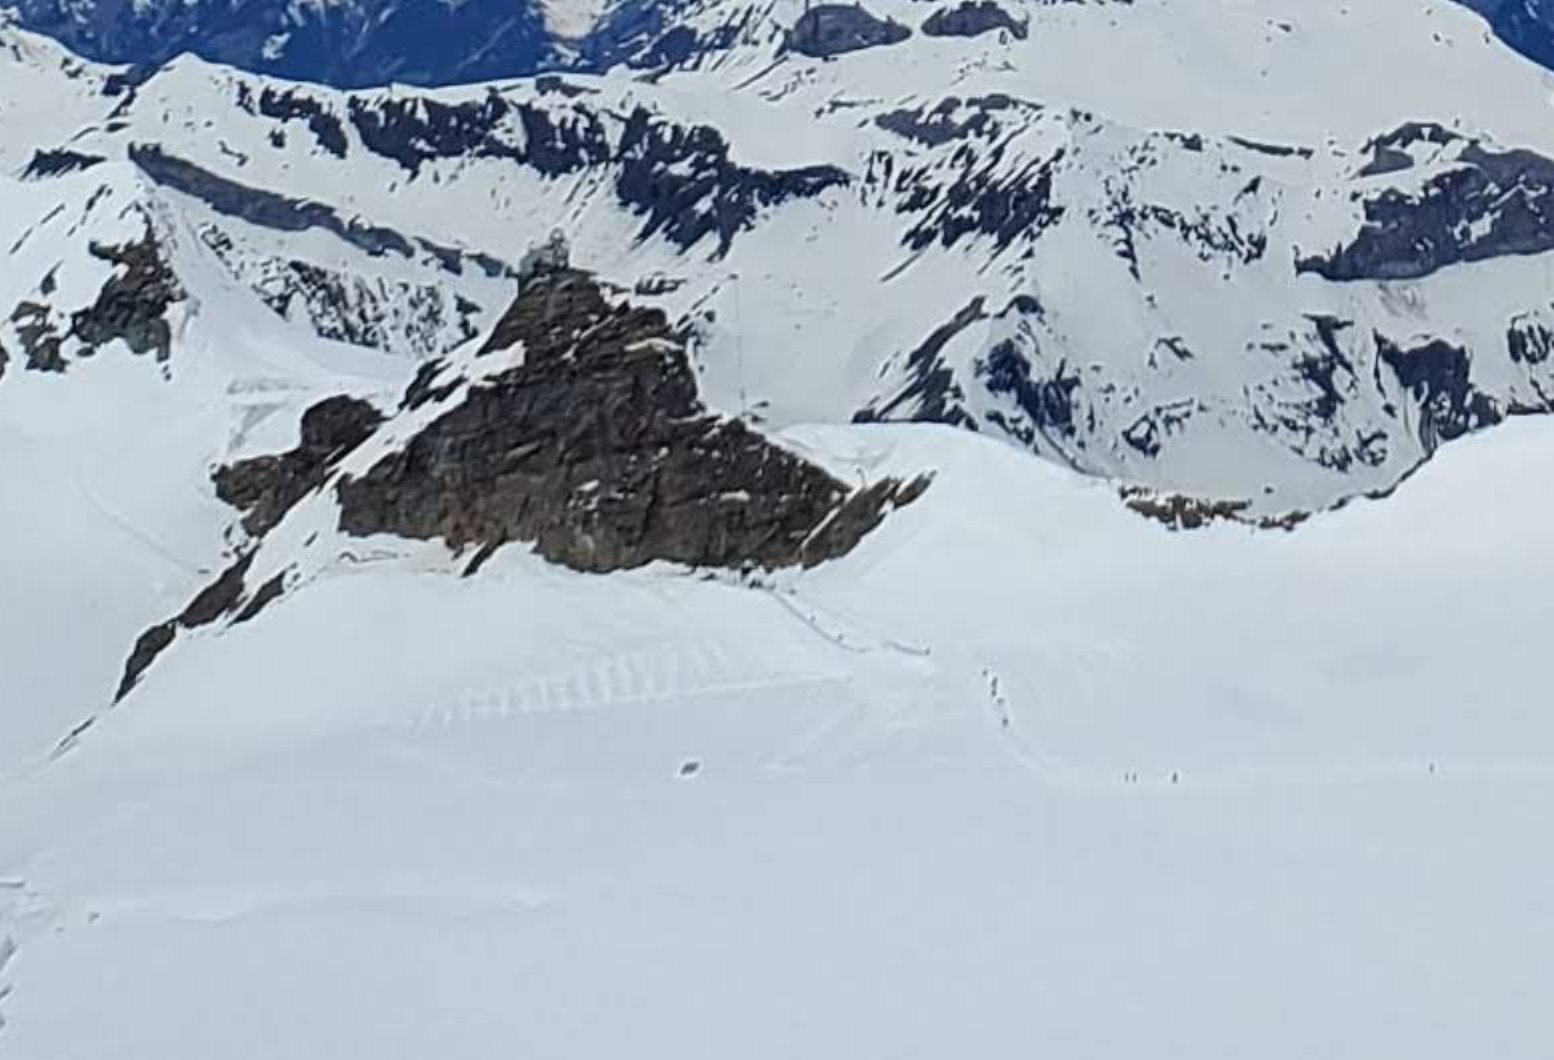 Zoomed in shot of the Jungfraujoch station (grey building atop the rocks). You can see the tiny dots of people walking on a groomed/safe path out onto the glacier.